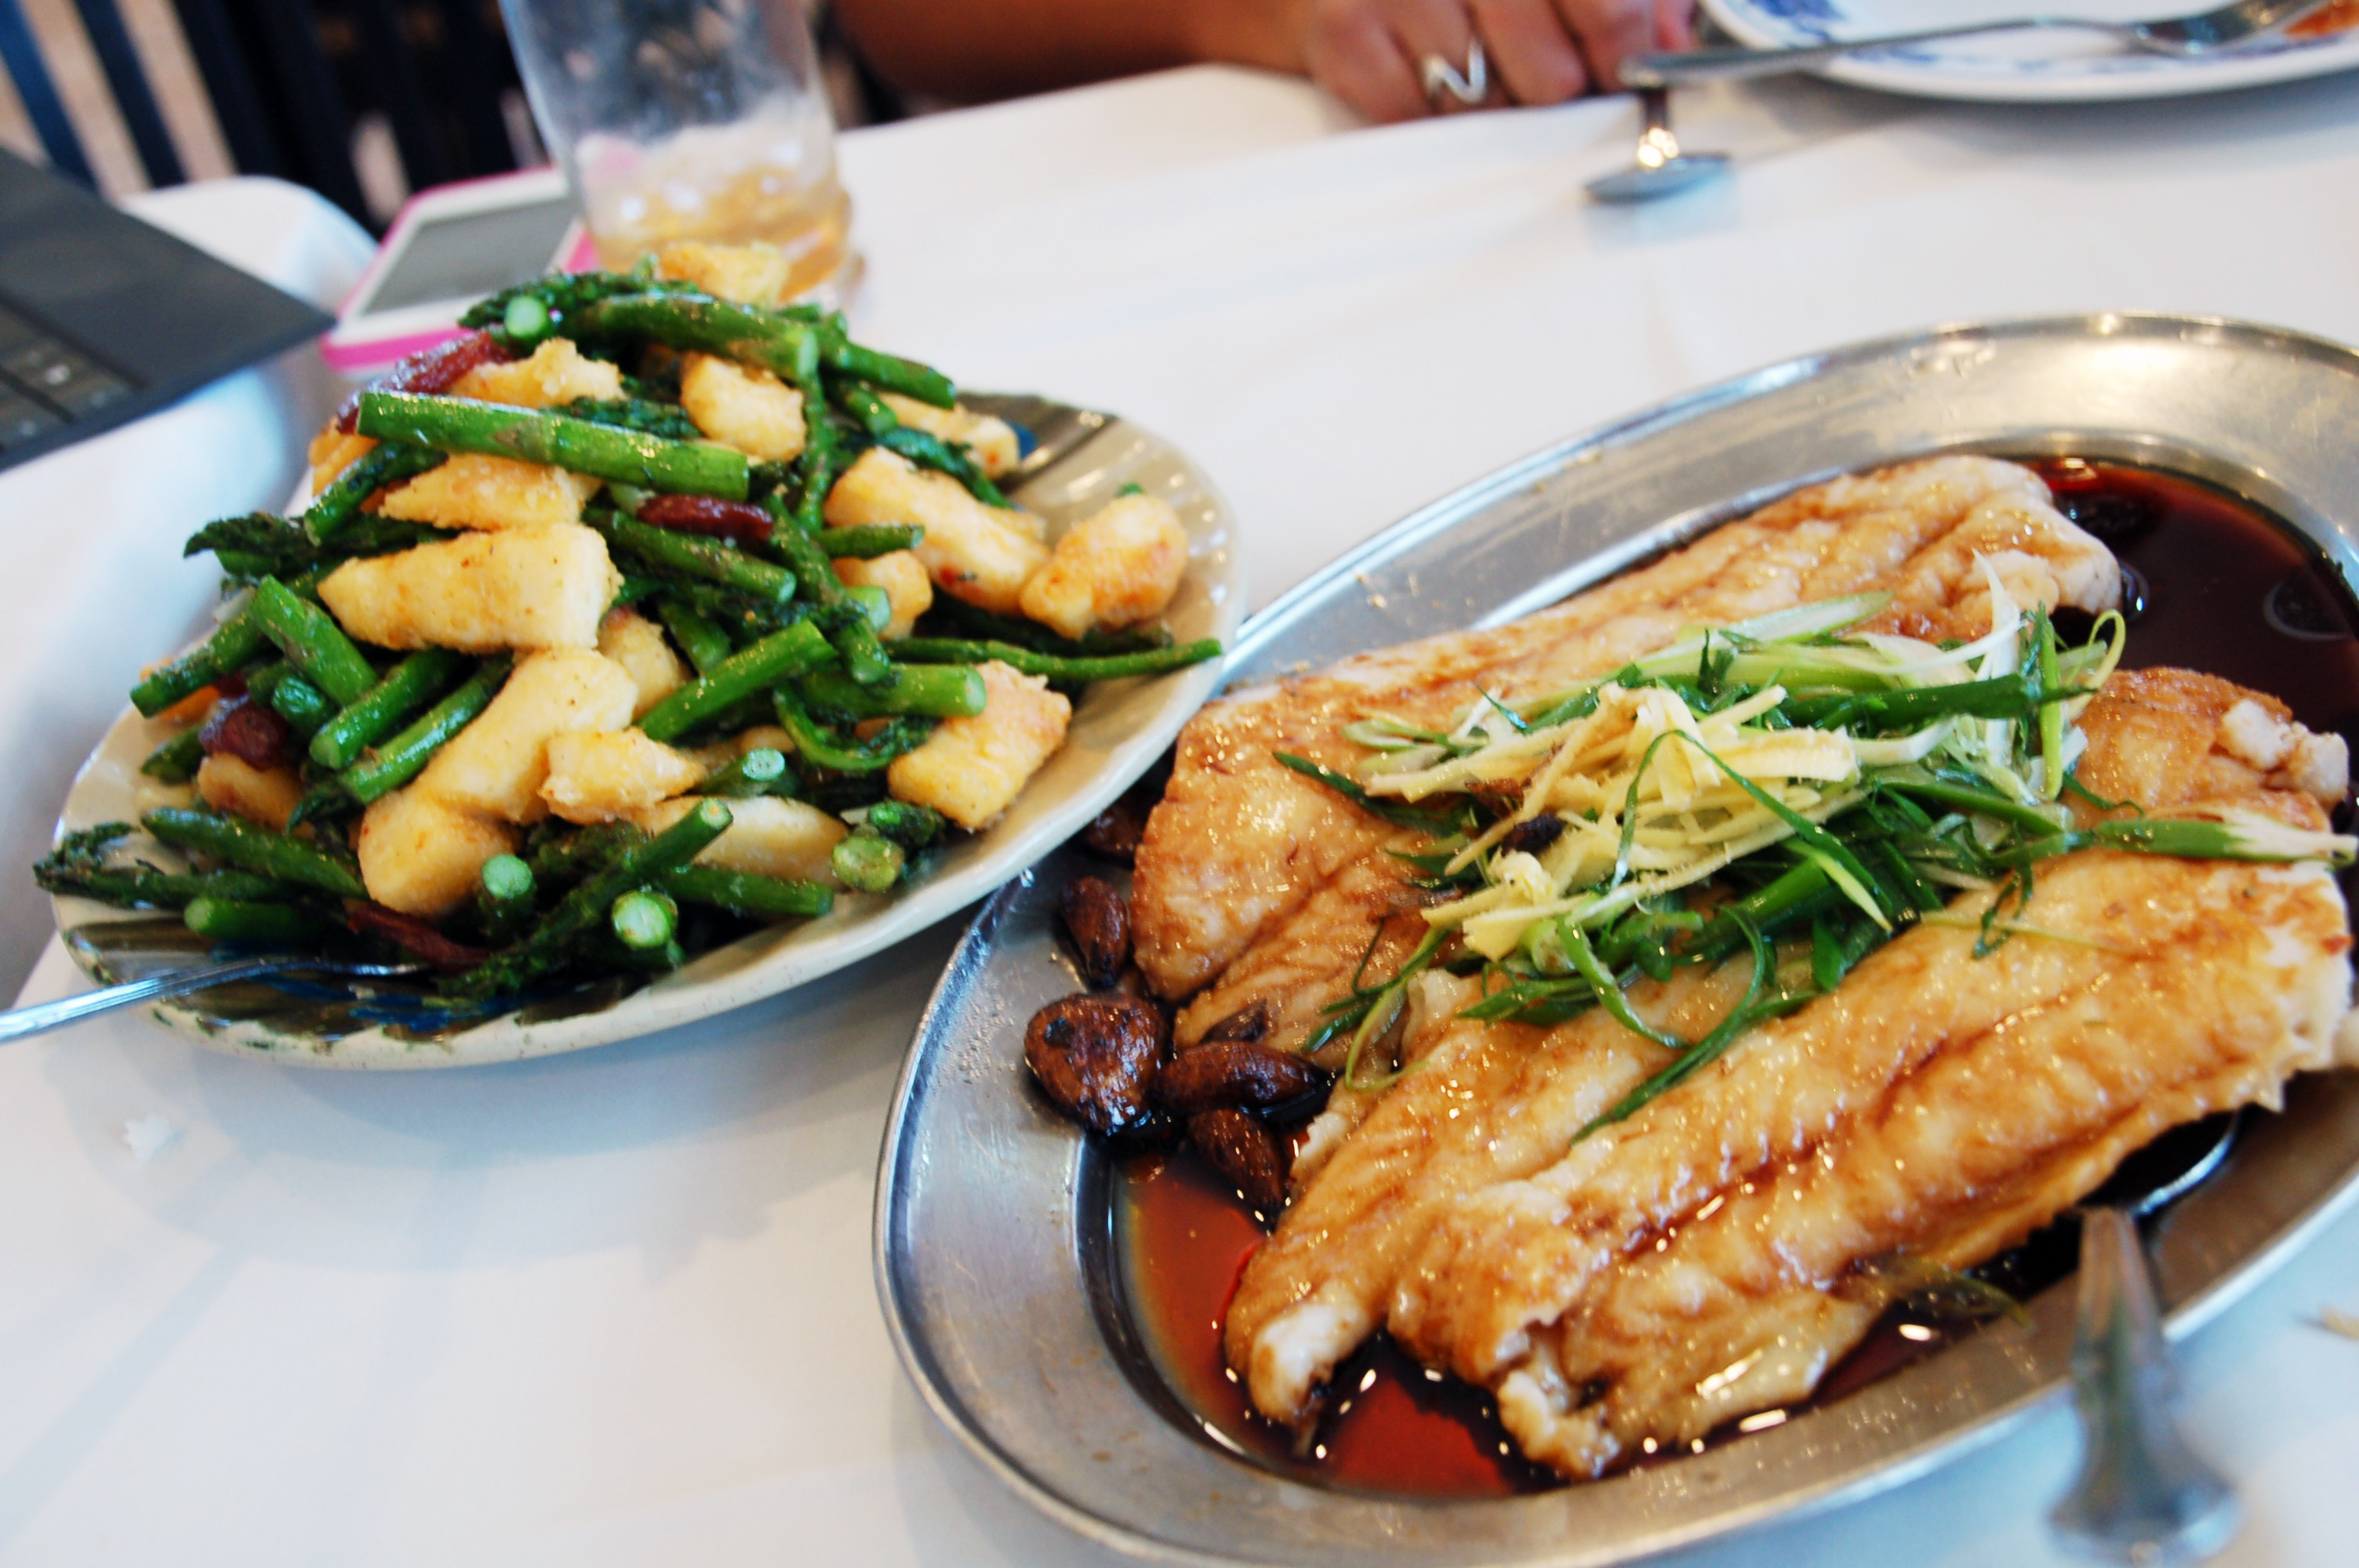 Calamari with asparagus, garlic fish with mushrooms at China House, Mexicali, Baja California, Mexico